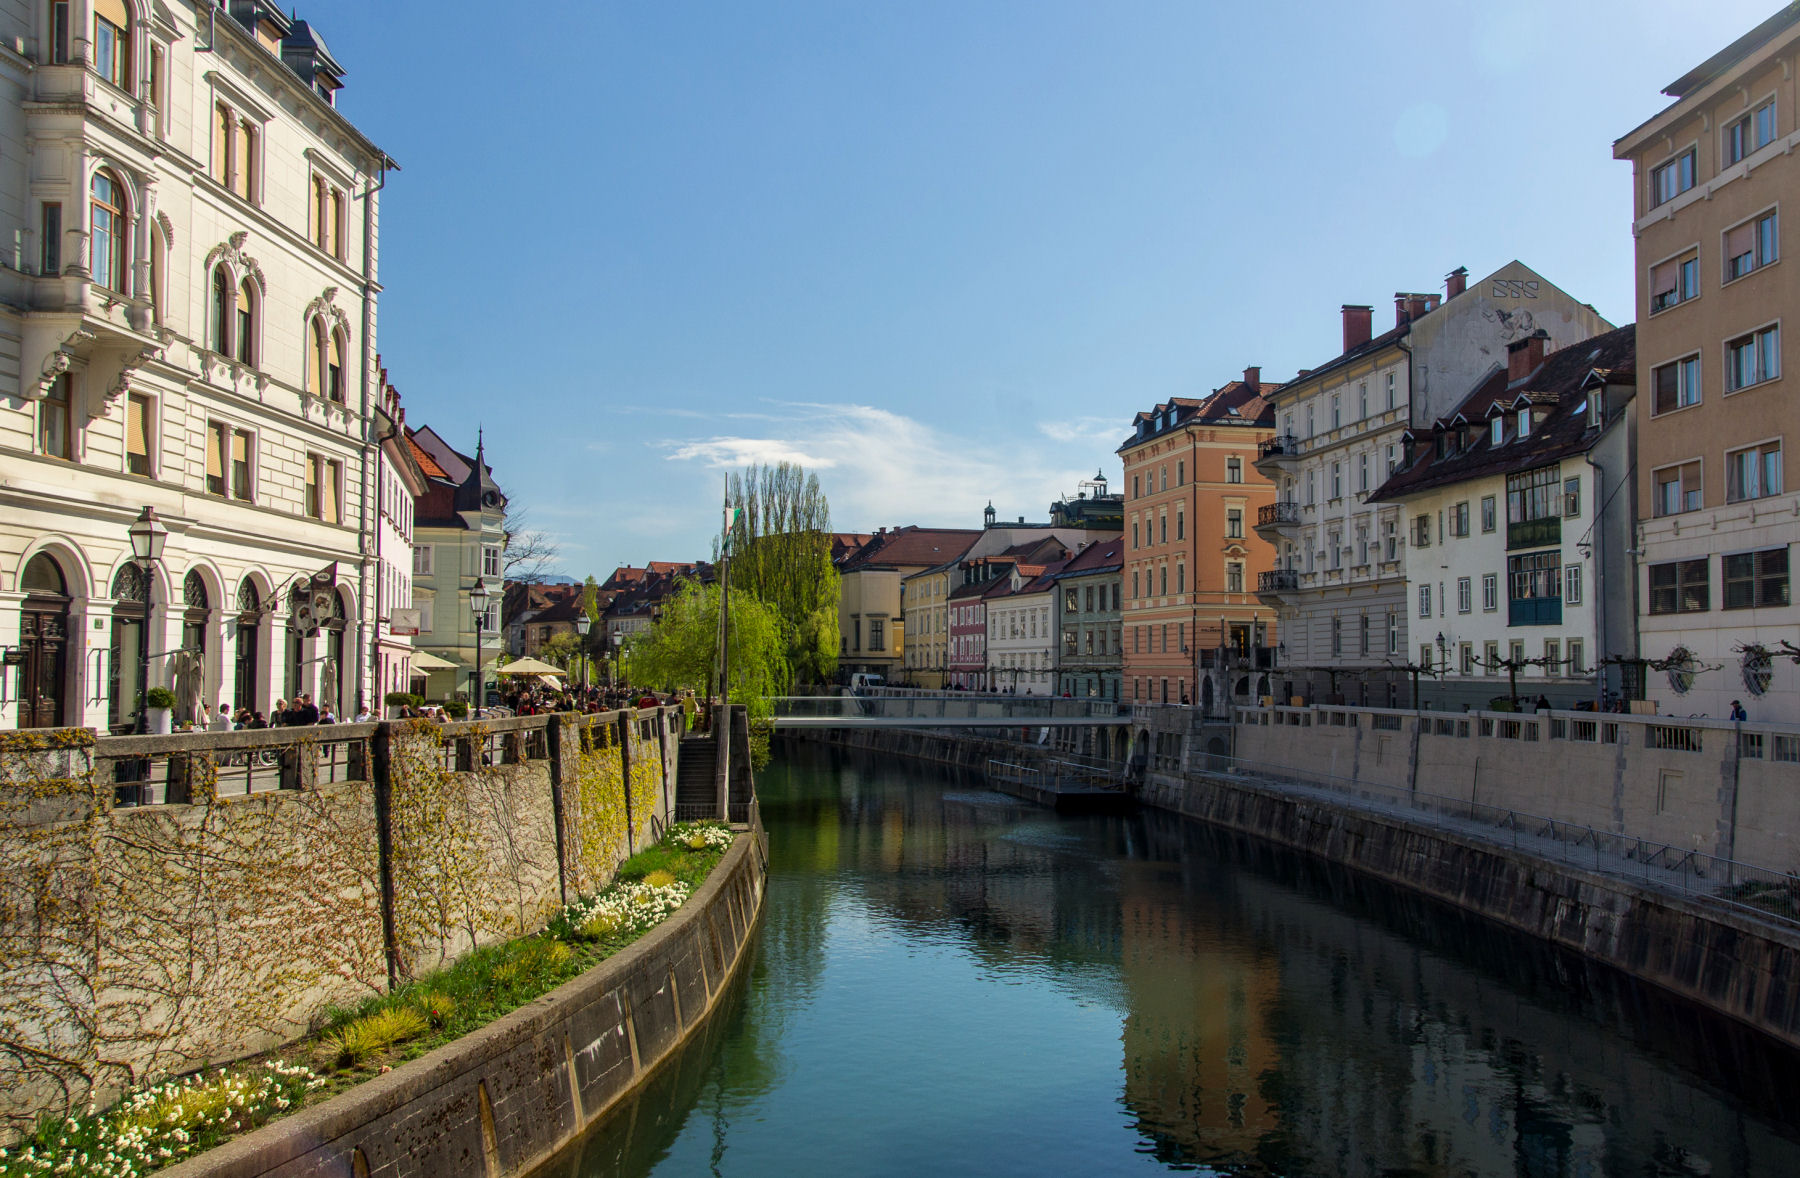 The Ljubljana canal provides great photo opportunities of architecture and different bridges